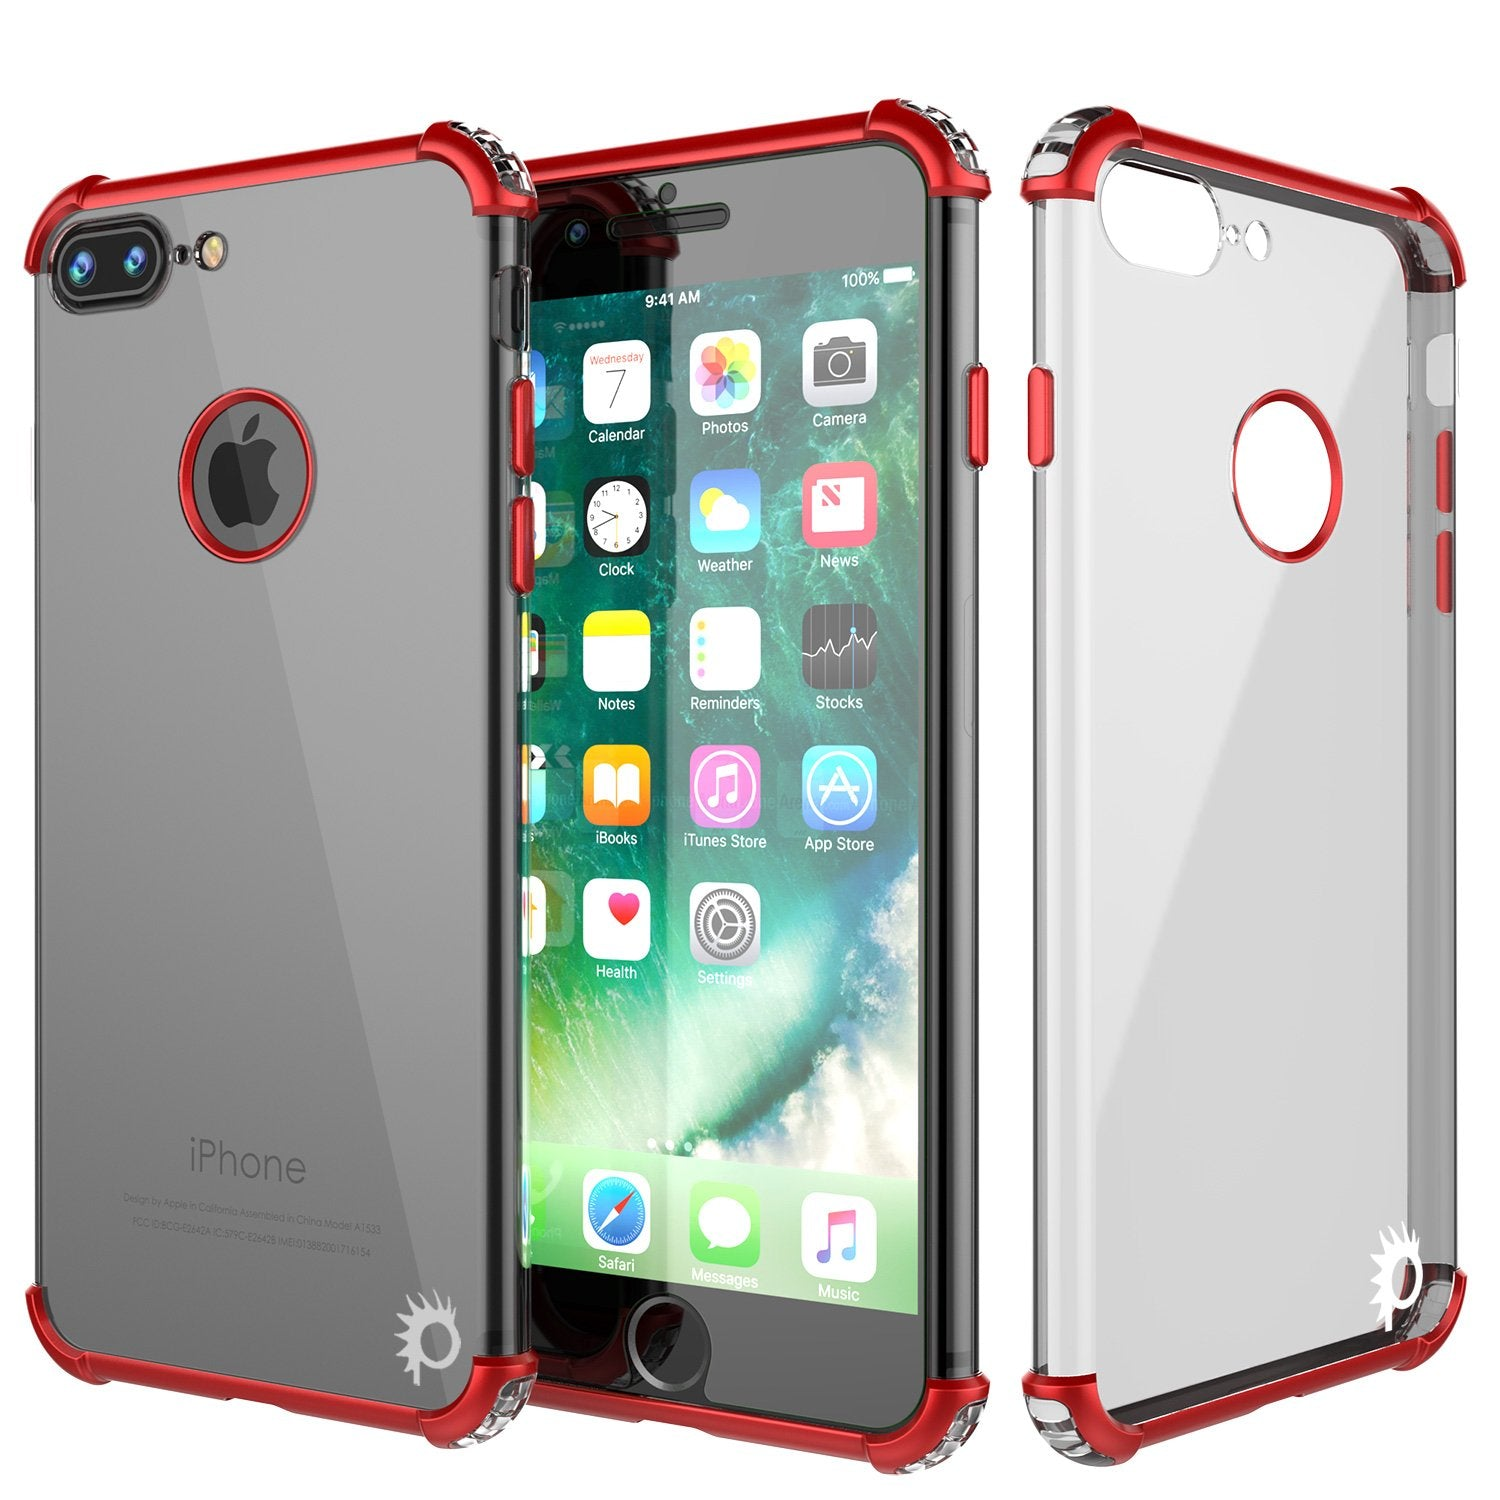 iPhone 8 PLUS Case, Punkcase BLAZE SERIES Protective Cover [Red